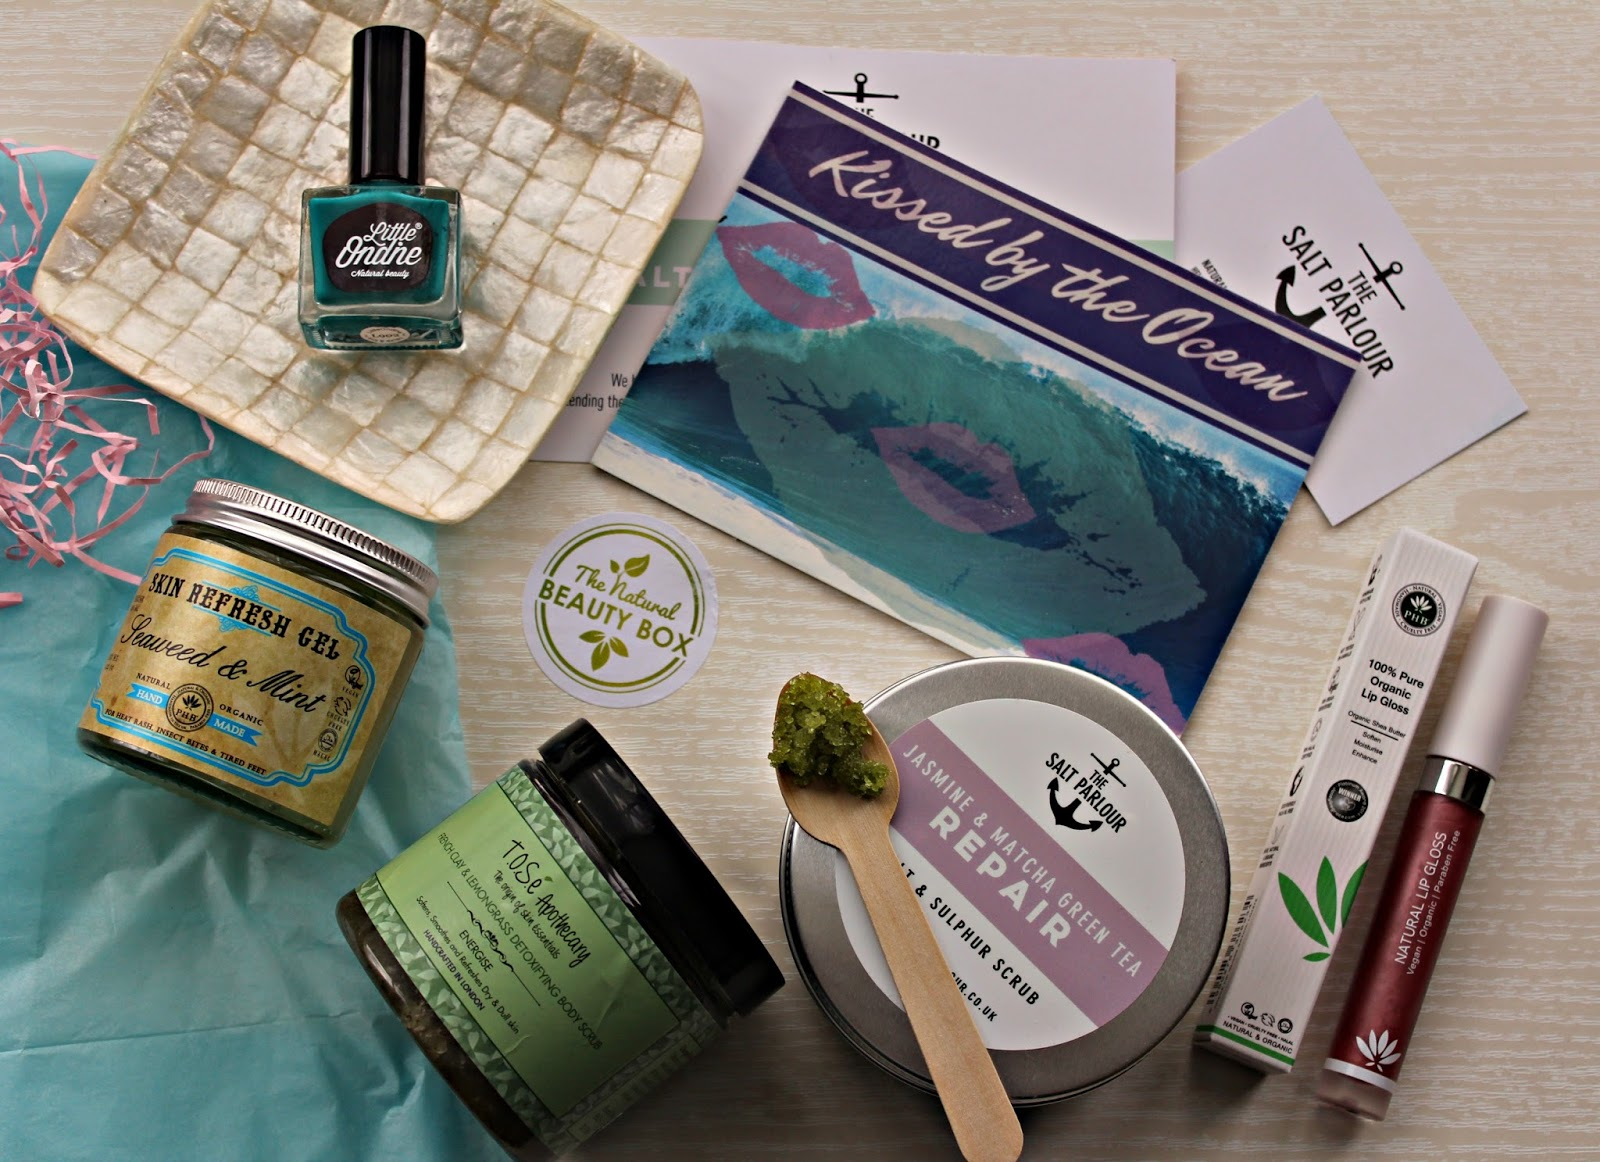 Introducing Natural Beauty box: Kissed by the Ocean edition